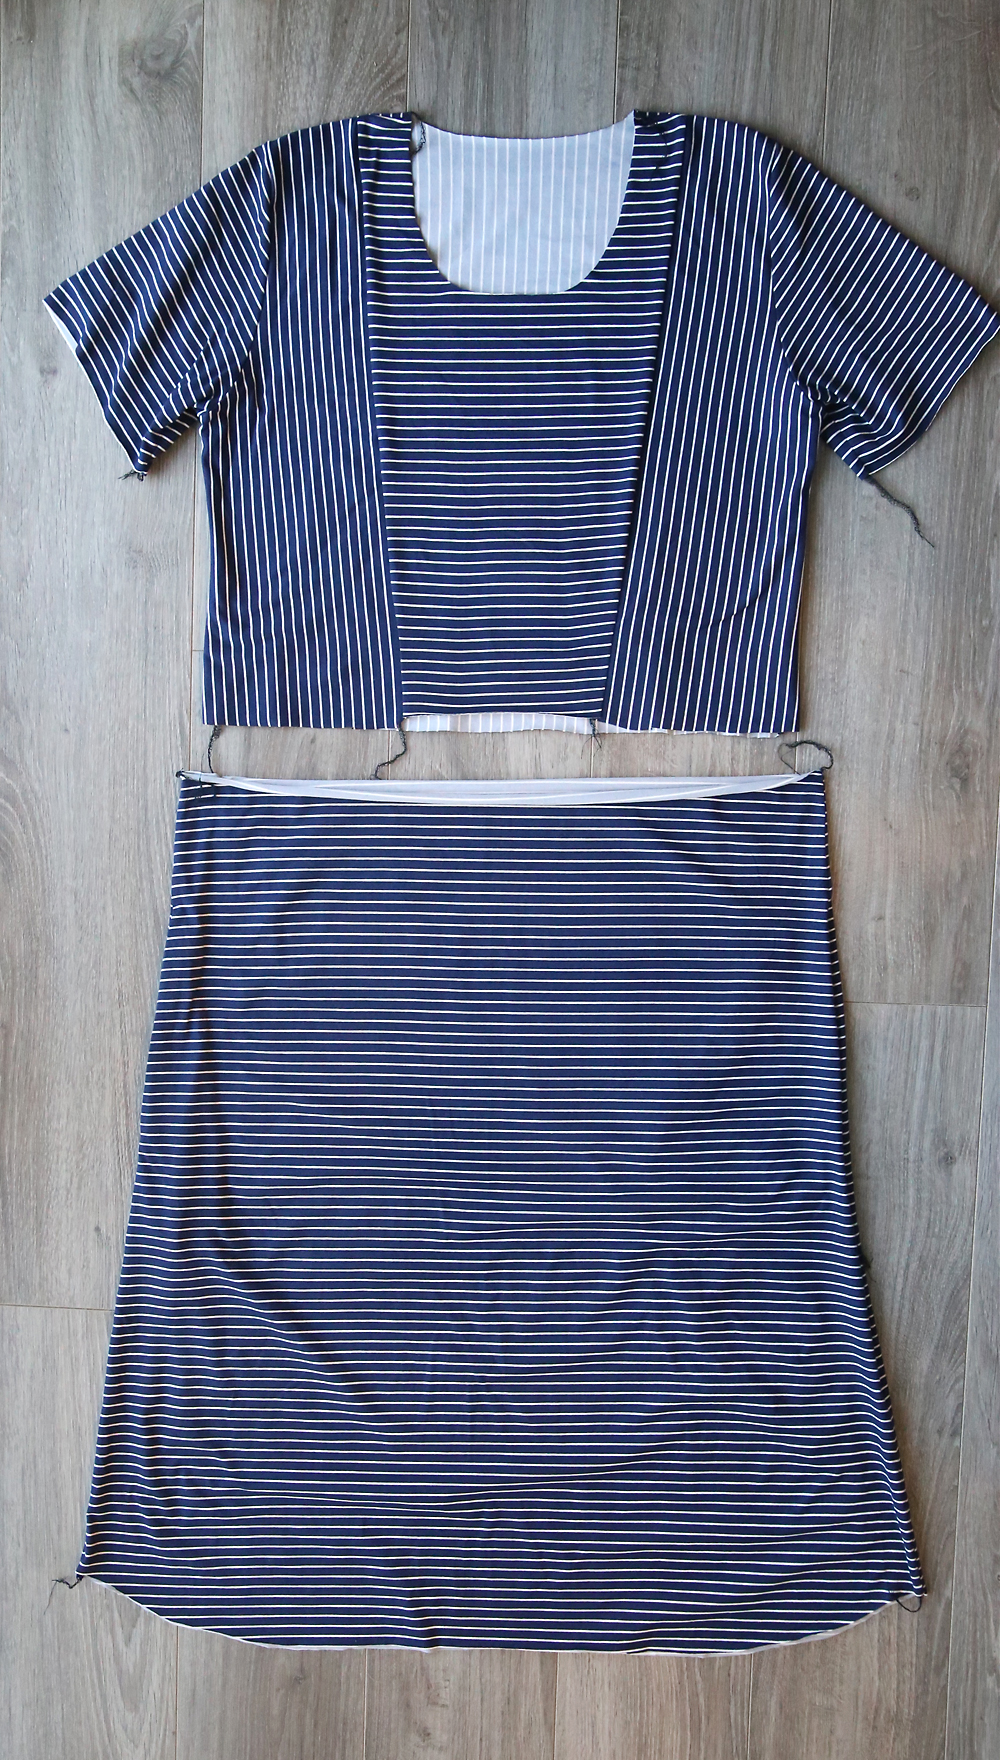 Cute dress! Click through for a free sewing pattern and tutorial in women's size large for this striped midi tee shirt dress.